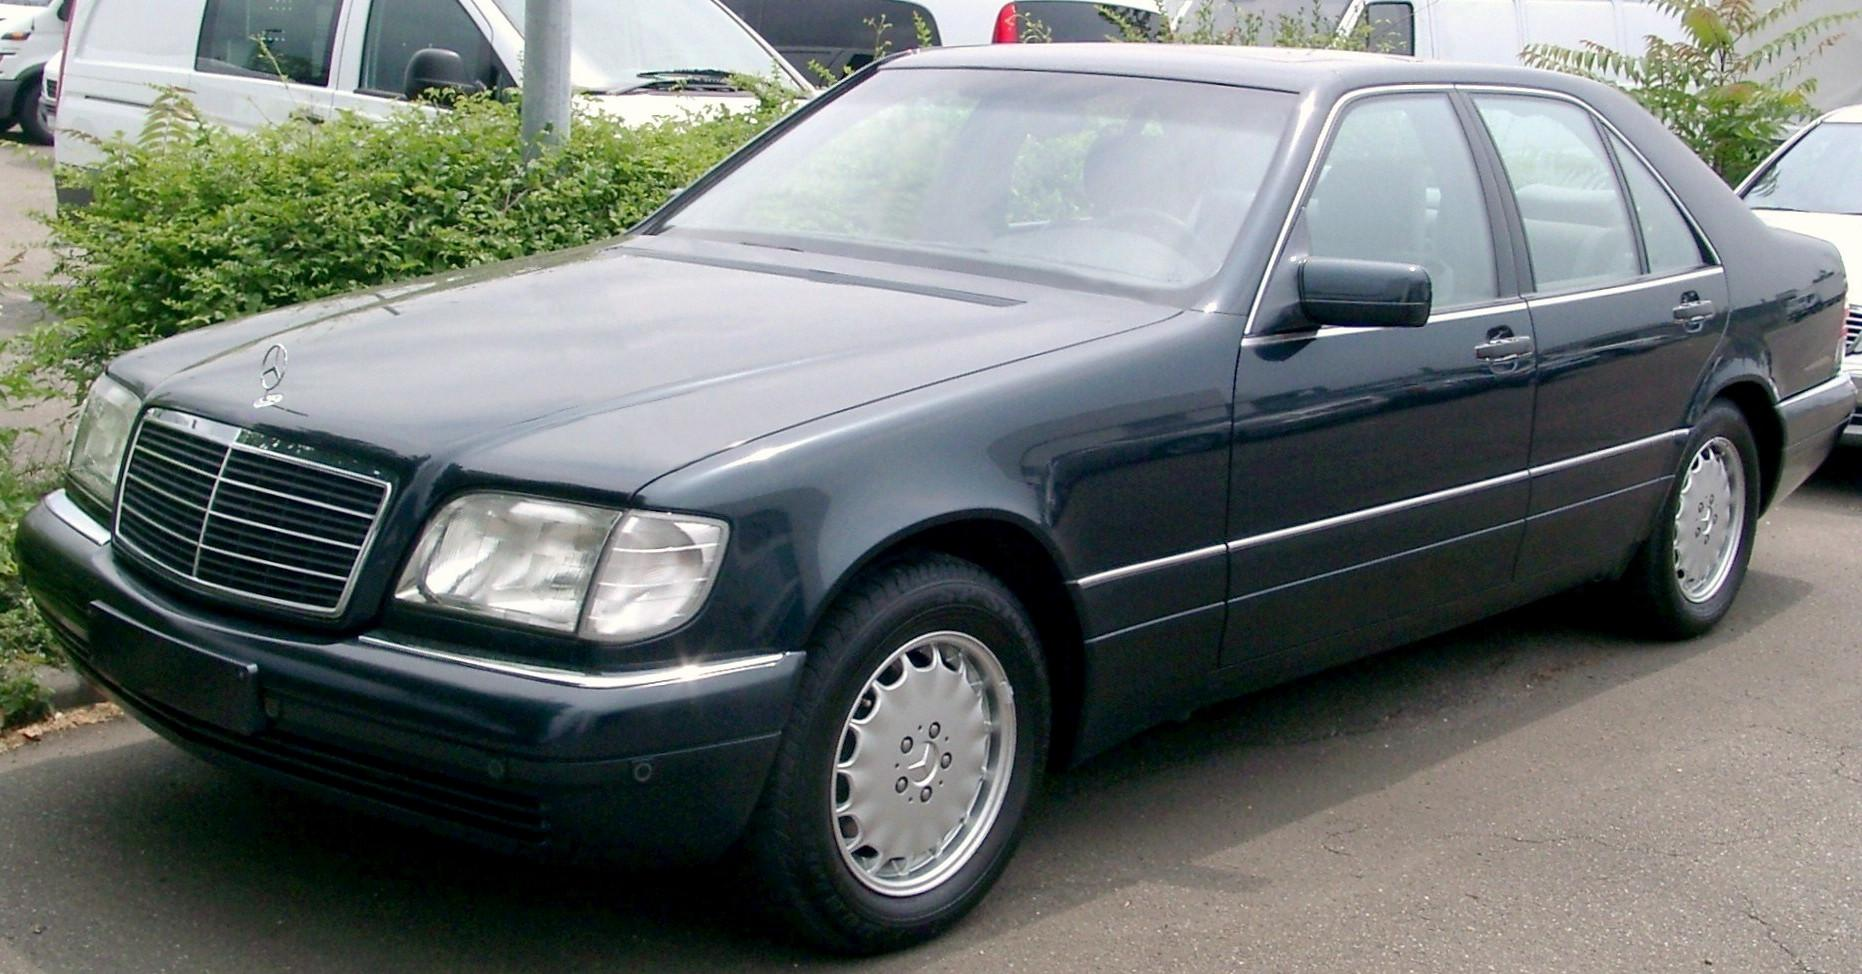 http://upload.wikimedia.org/wikipedia/commons/d/d6/Mercedes_W140_front_20070609.jpg